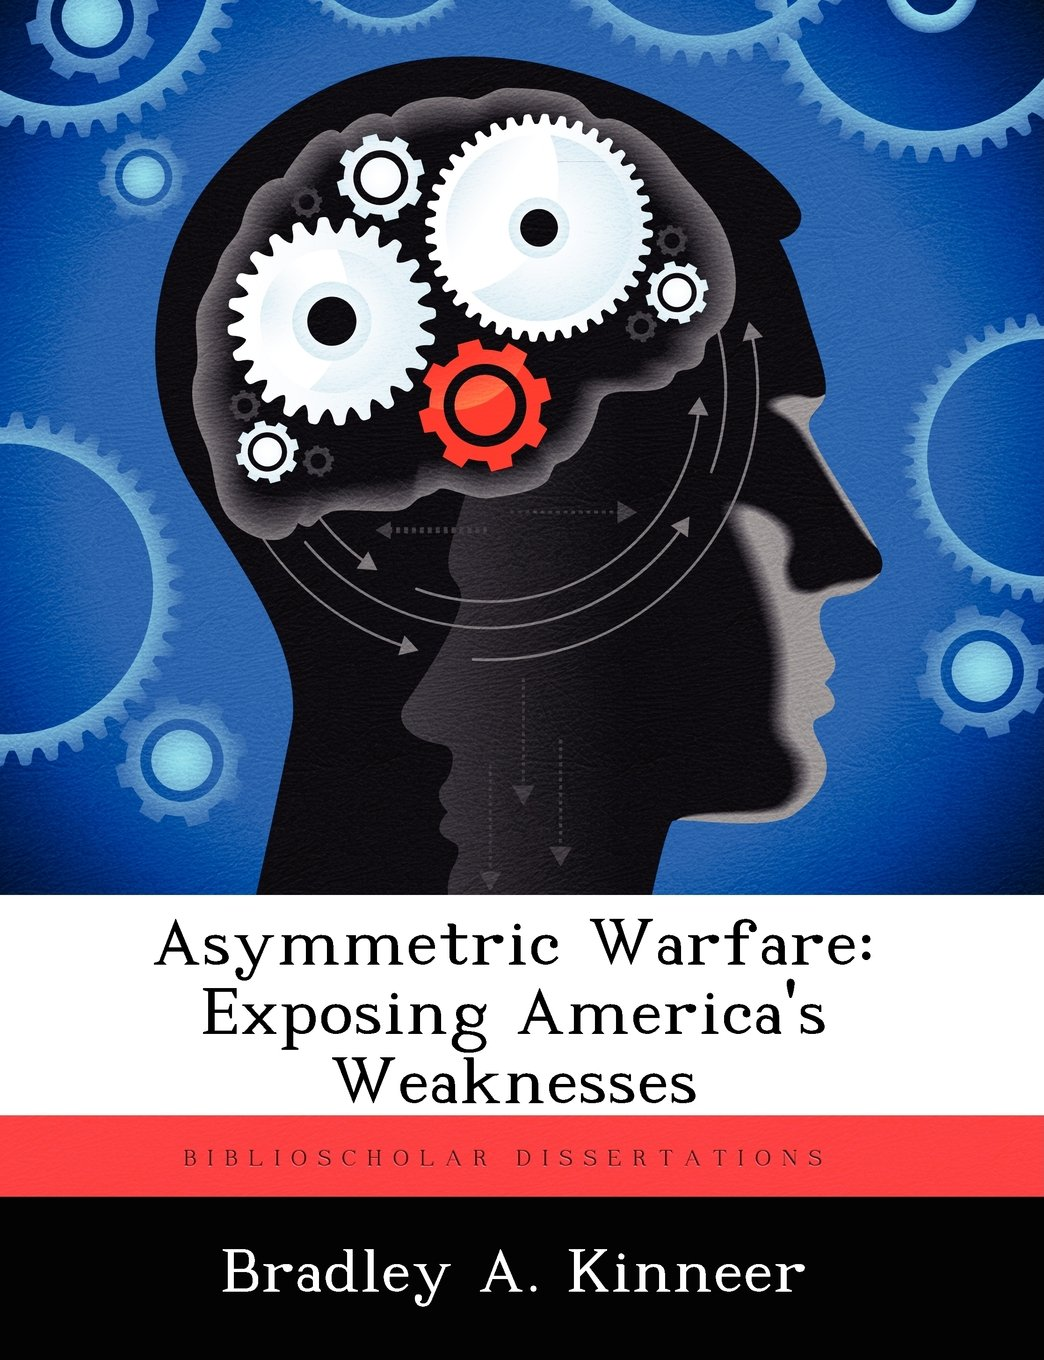 Download Asymmetric Warfare: Exposing America's Weaknesses ePub fb2 ebook